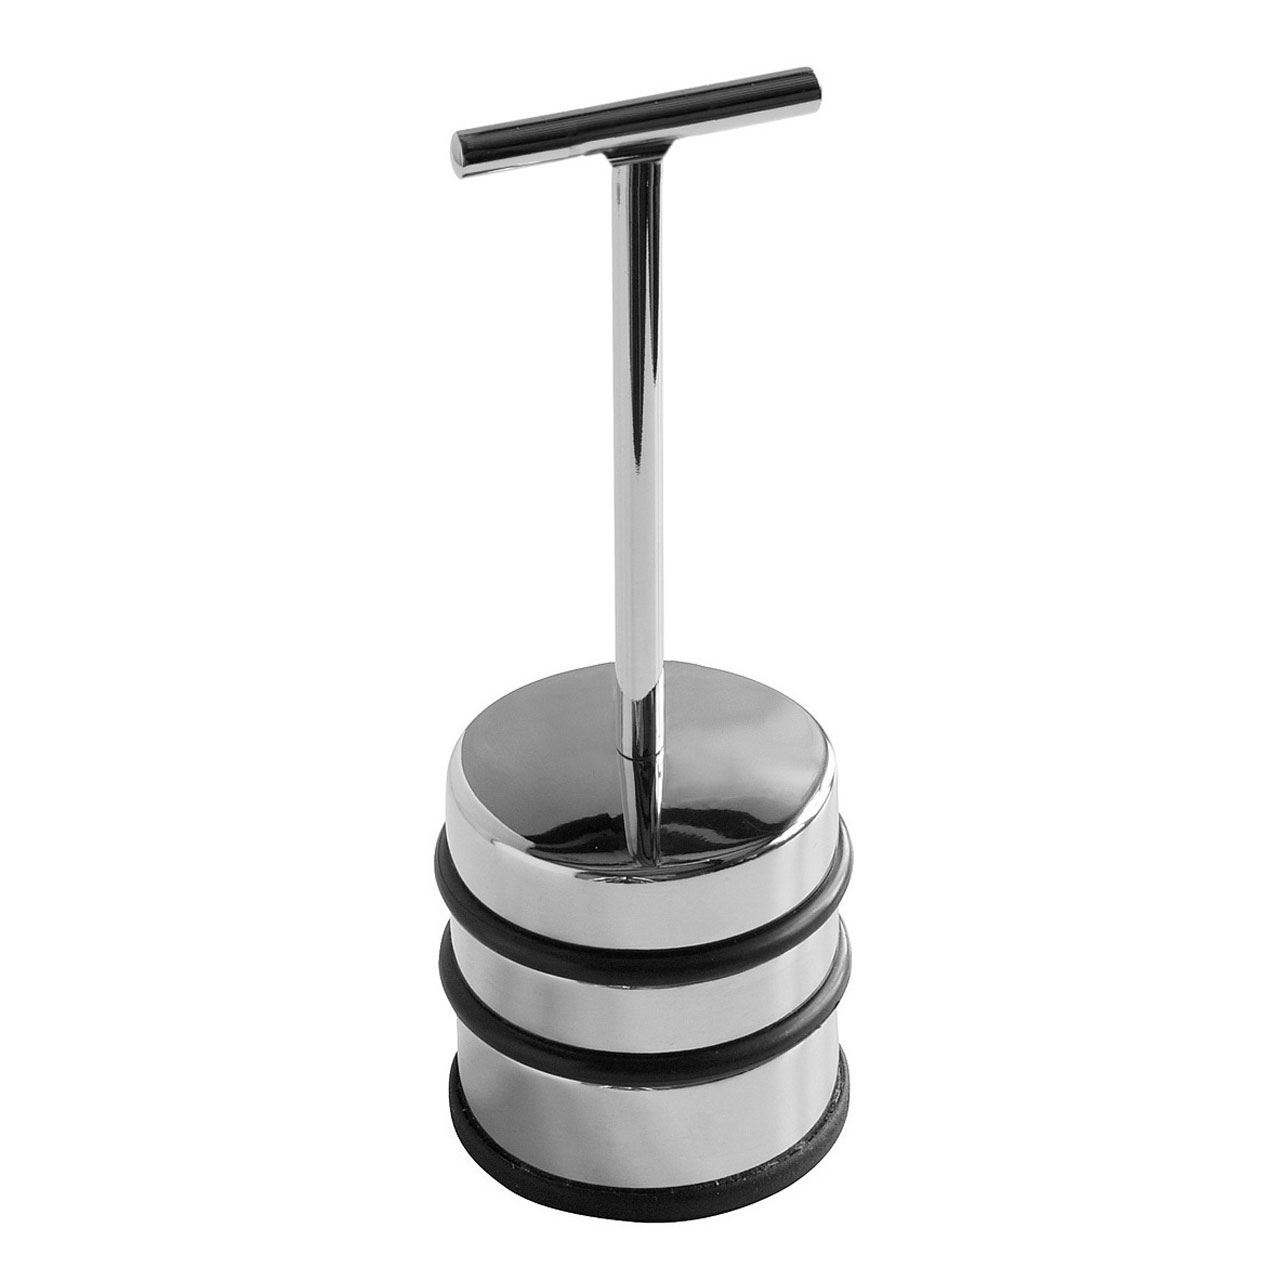 Door Stopper,Chrome With Handle,Protective Rubber Bands